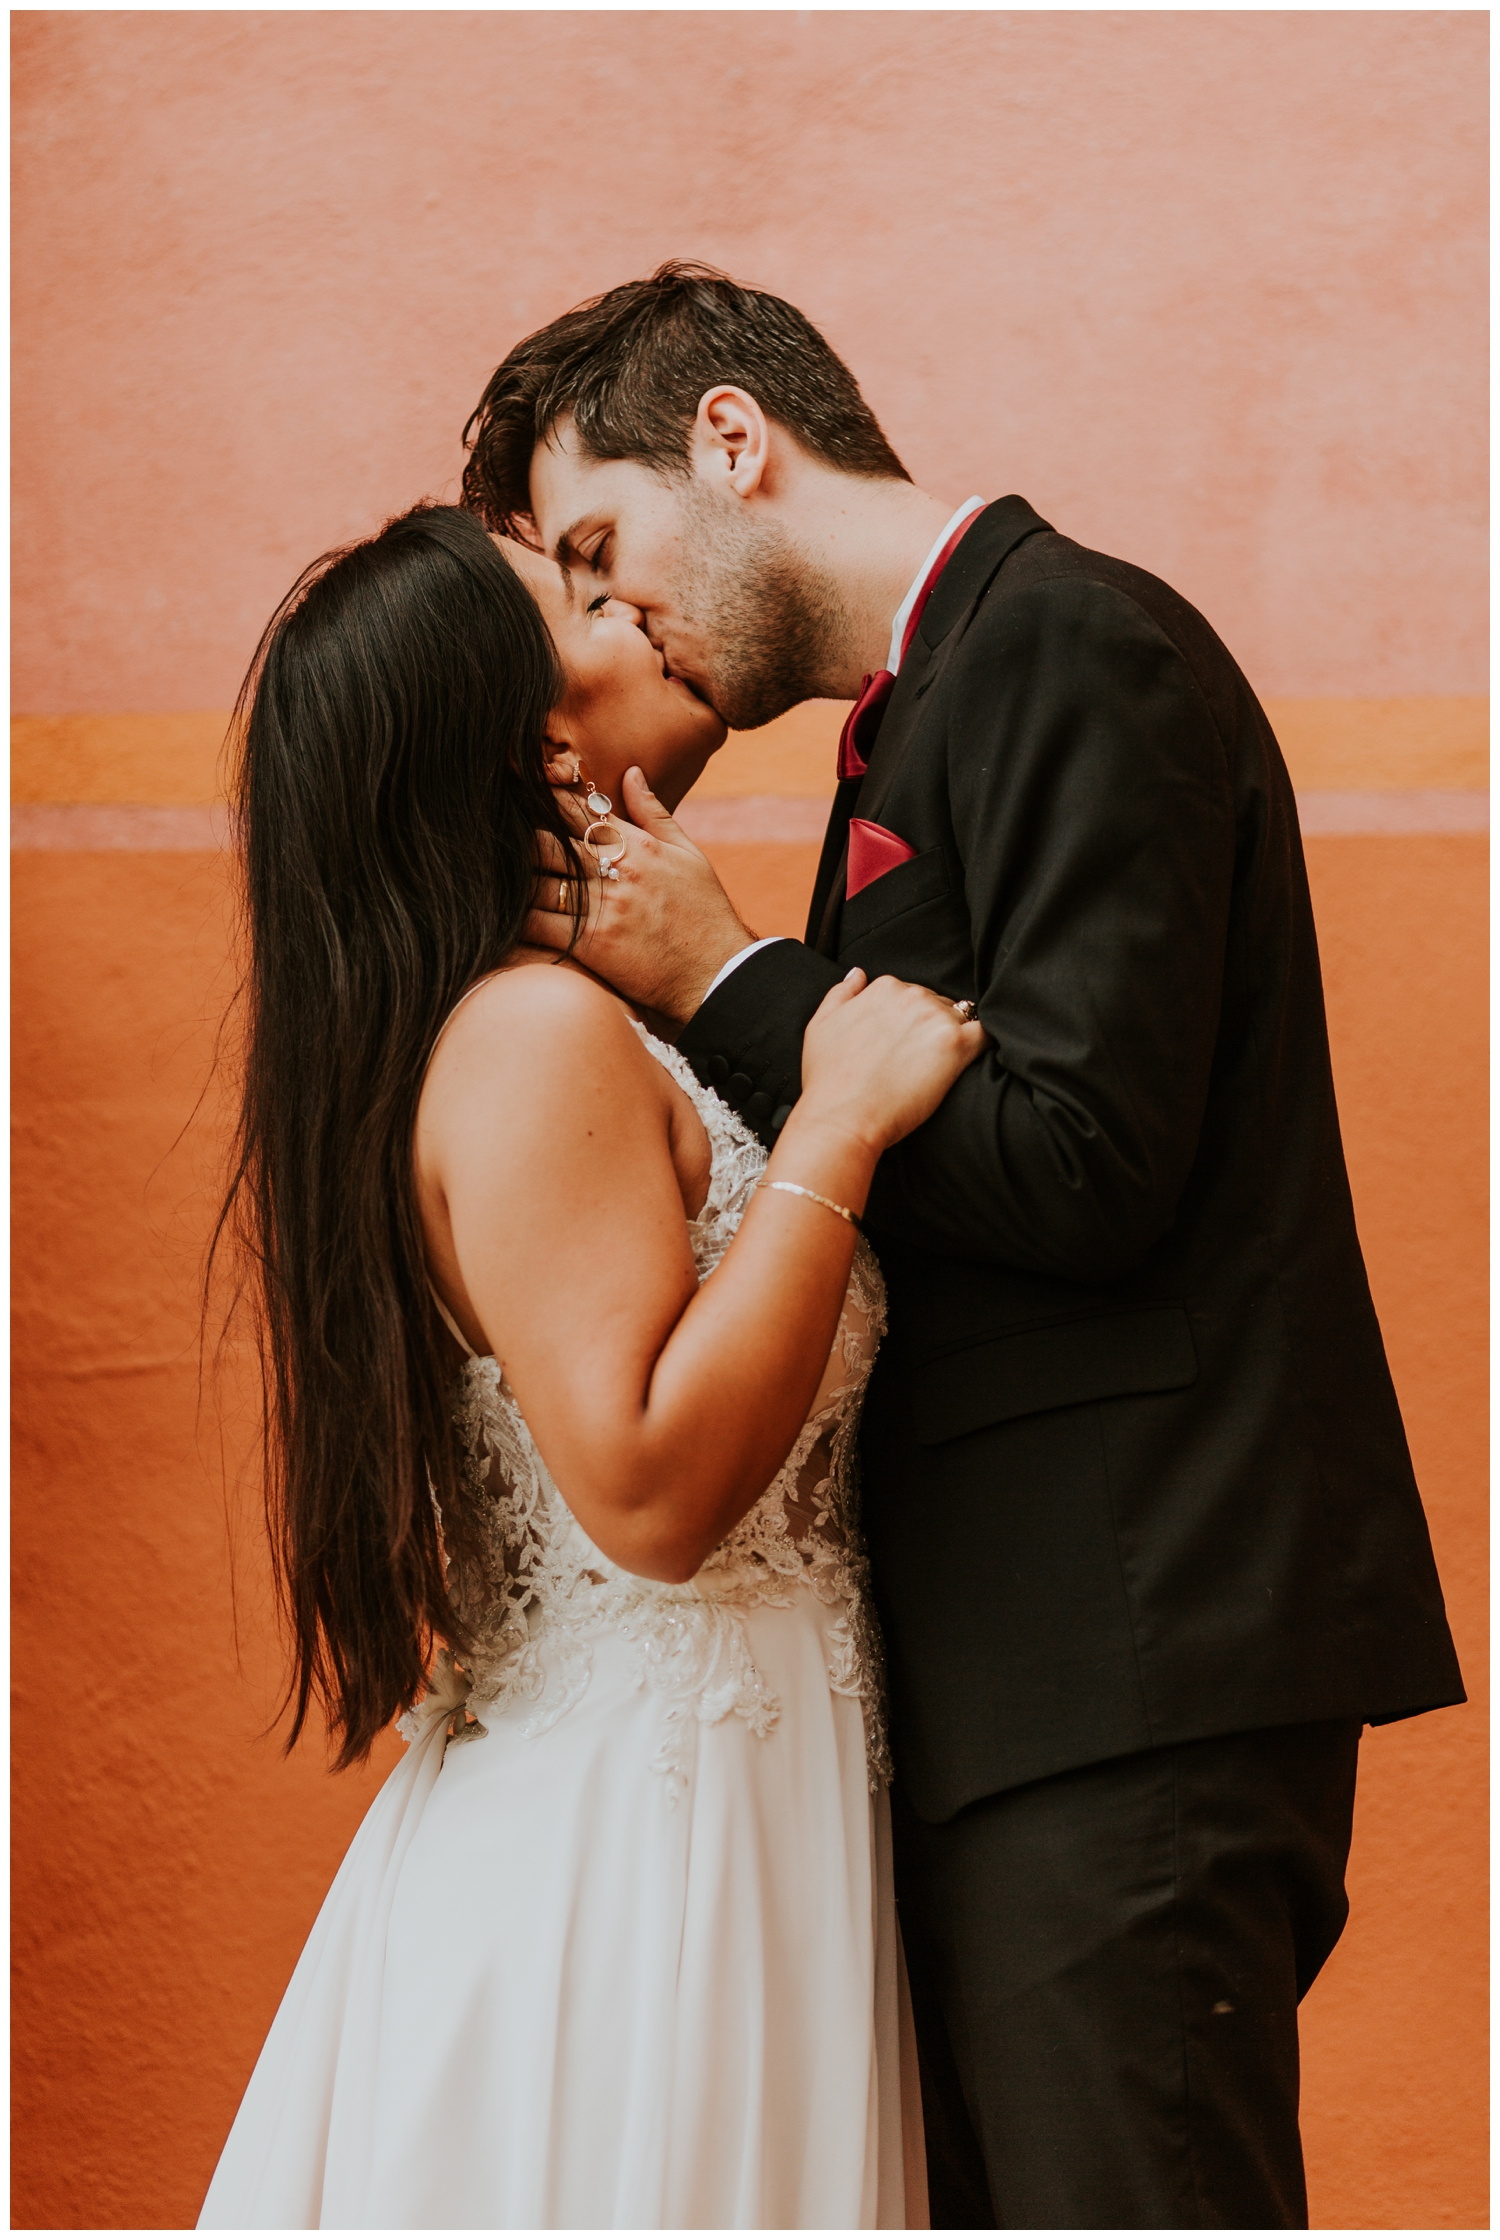 Shane+Sofia, San Miguel de Allende Wedding, Mexico Wedding, Contista Productions Wedding Photography_0225.jpg